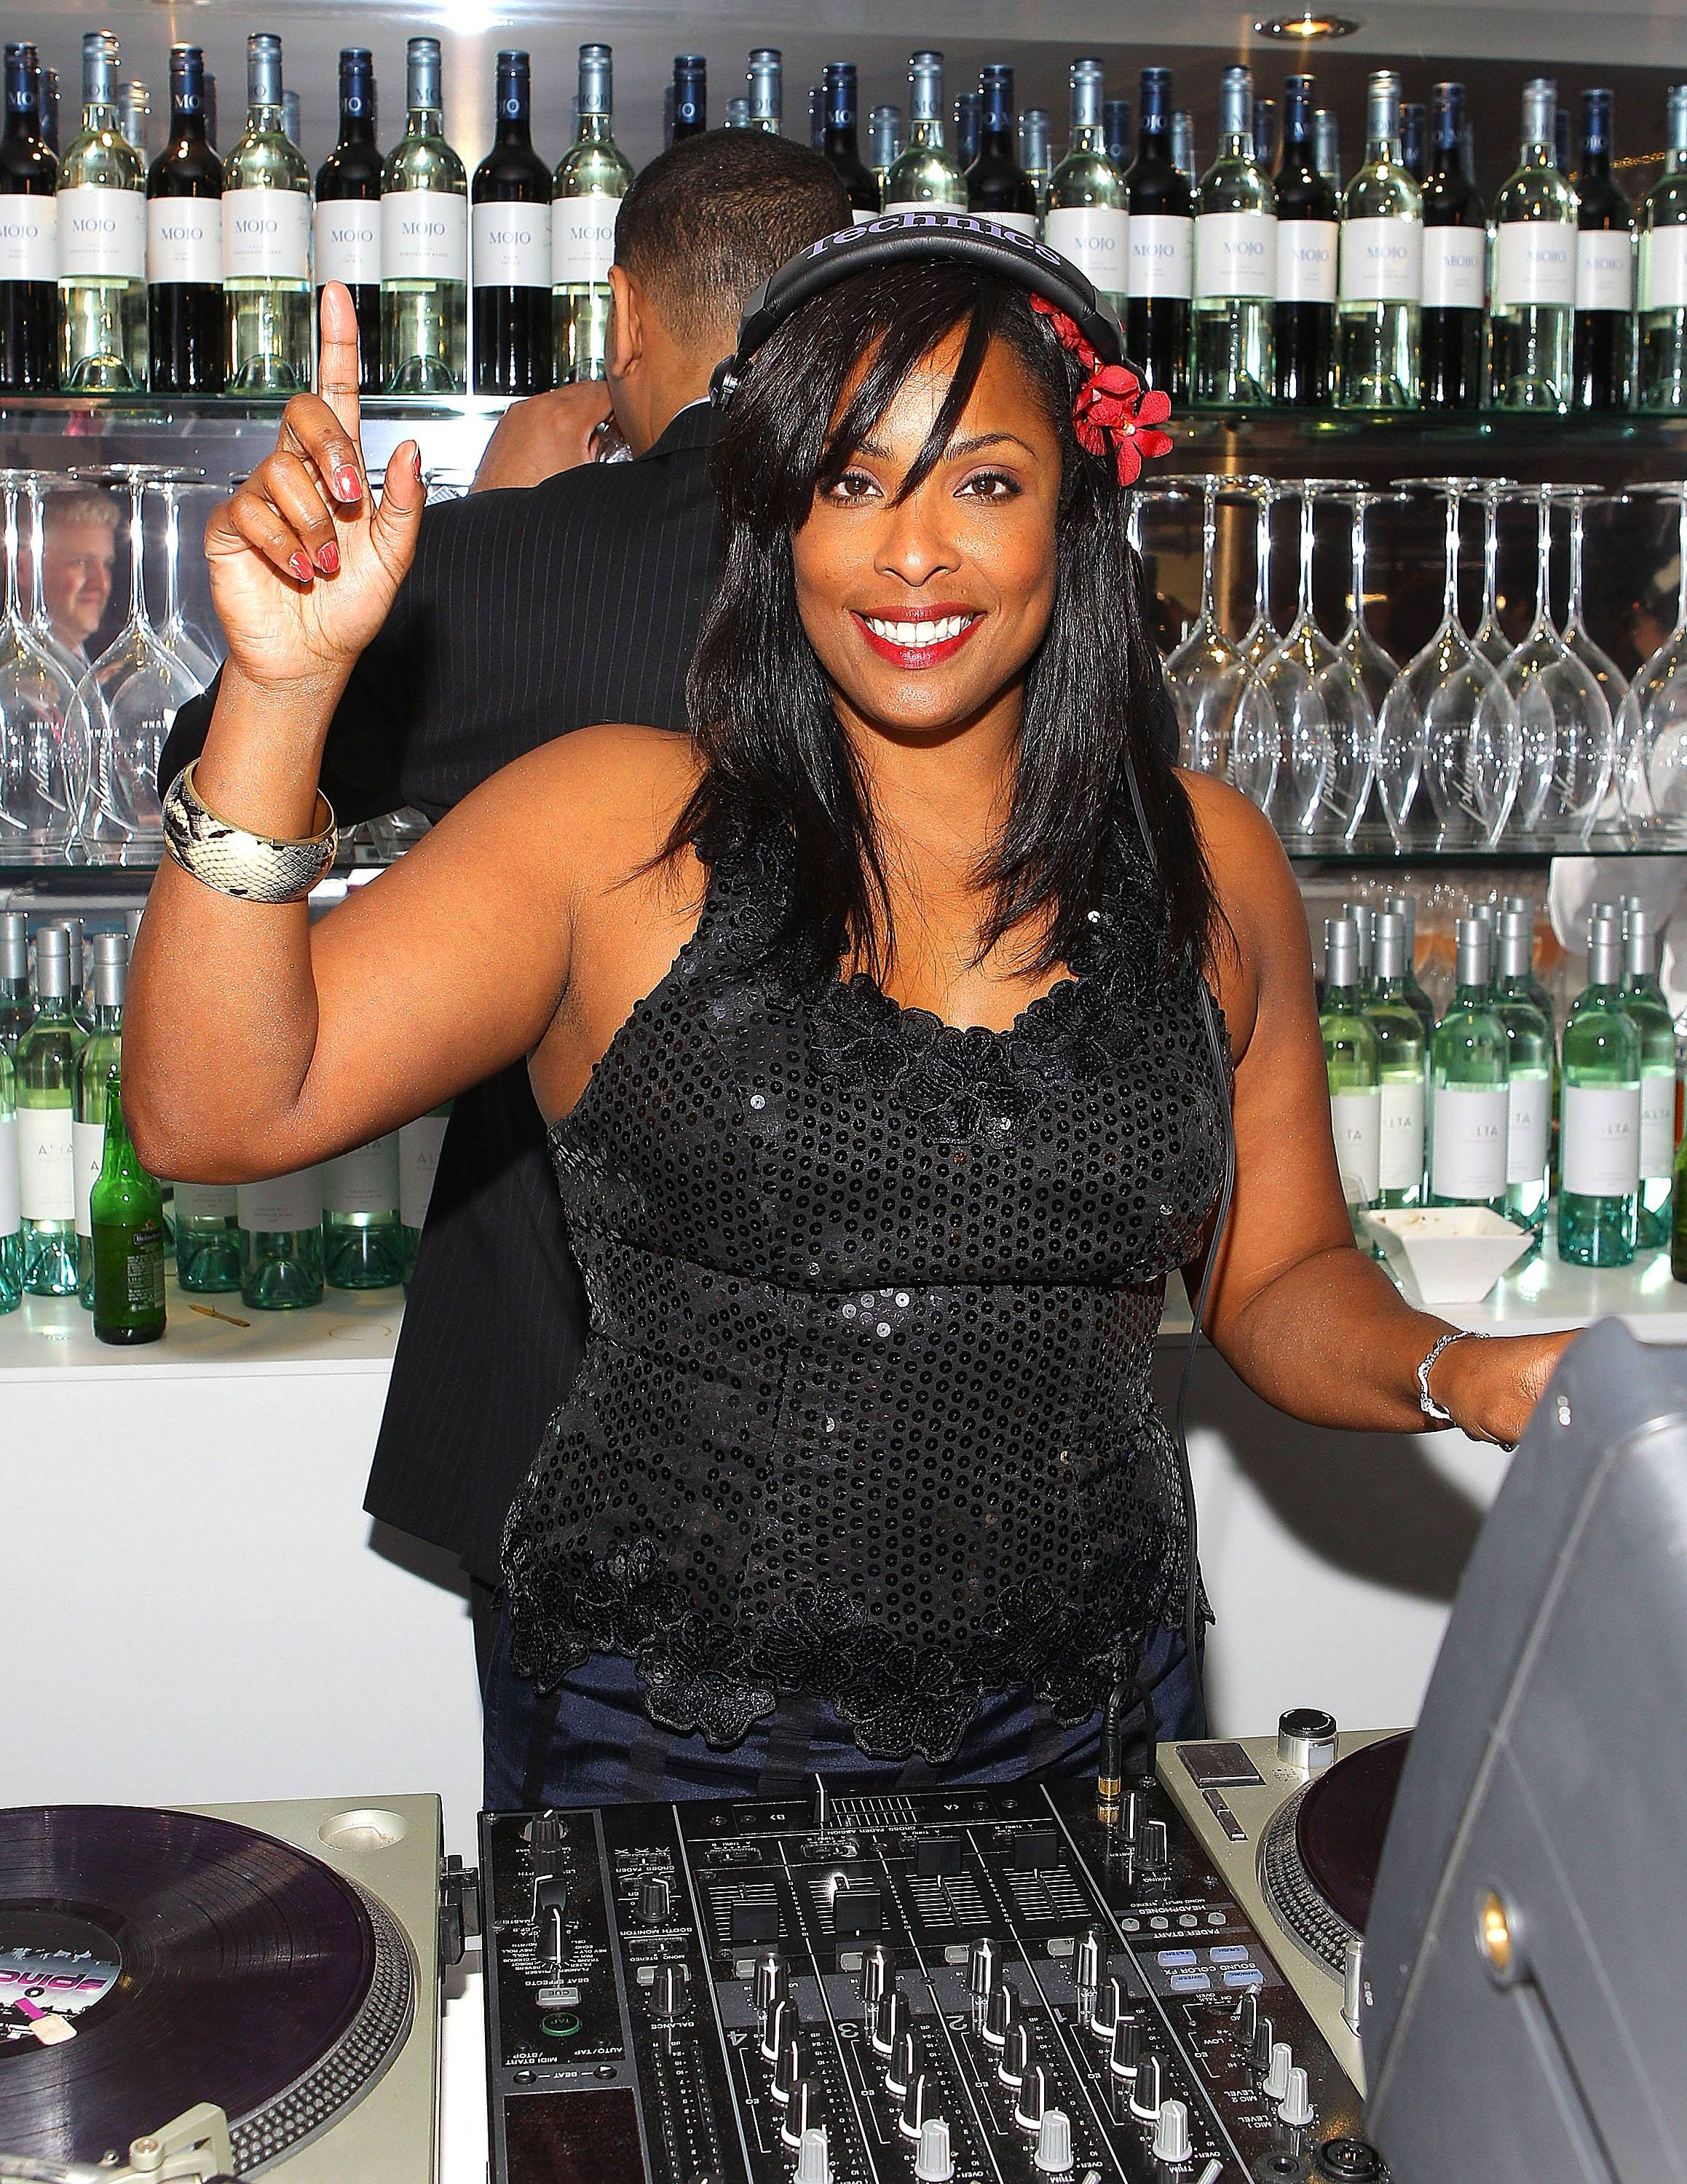 17. DJ Spinderella - As DJ for Salt-N-Pepa, the best-selling female rap group of all time, Spinderella was an inspiration to female turntablists worldwide. She went on to break records for radio stations in L.A. and Dallas. (Photo: Scott Barbour/Getty Images)